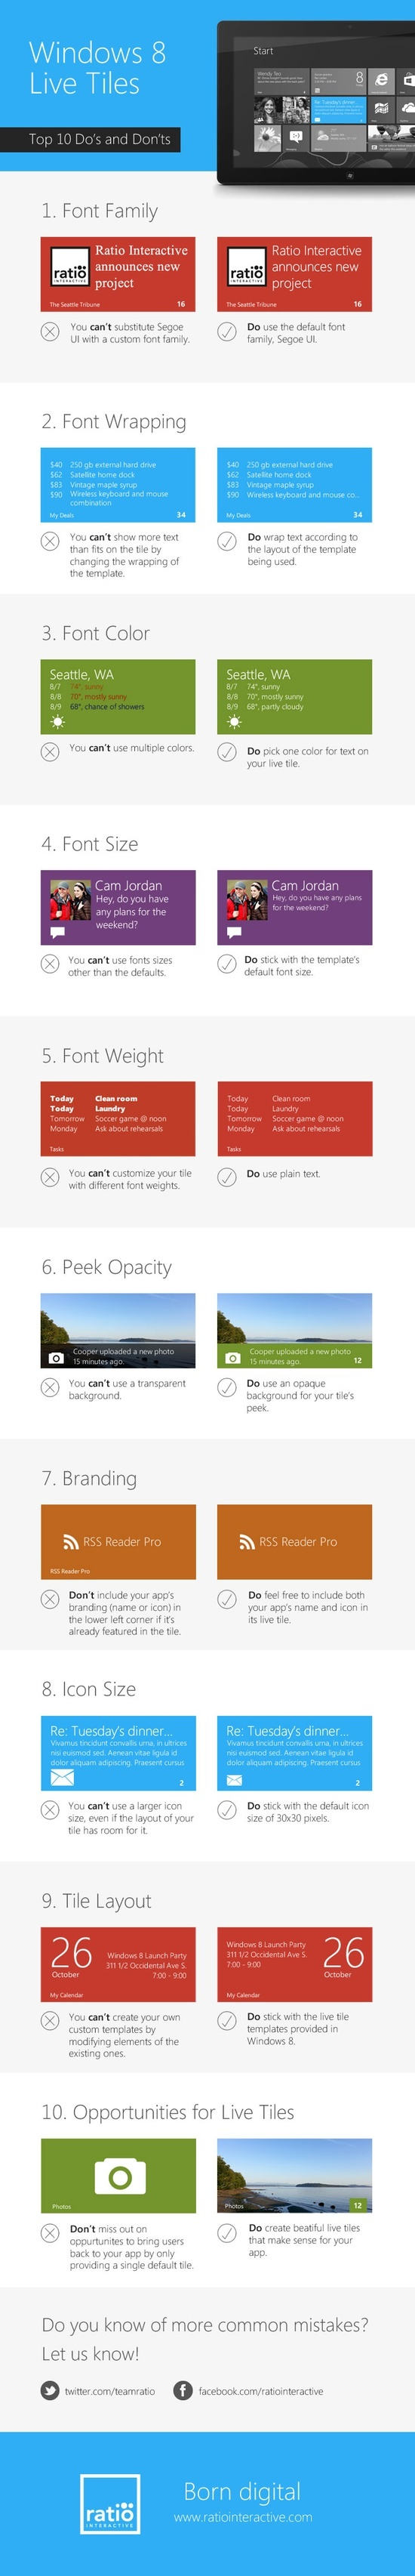 Windows 8 Live Tiles: Top 10 Do's and Don'ts